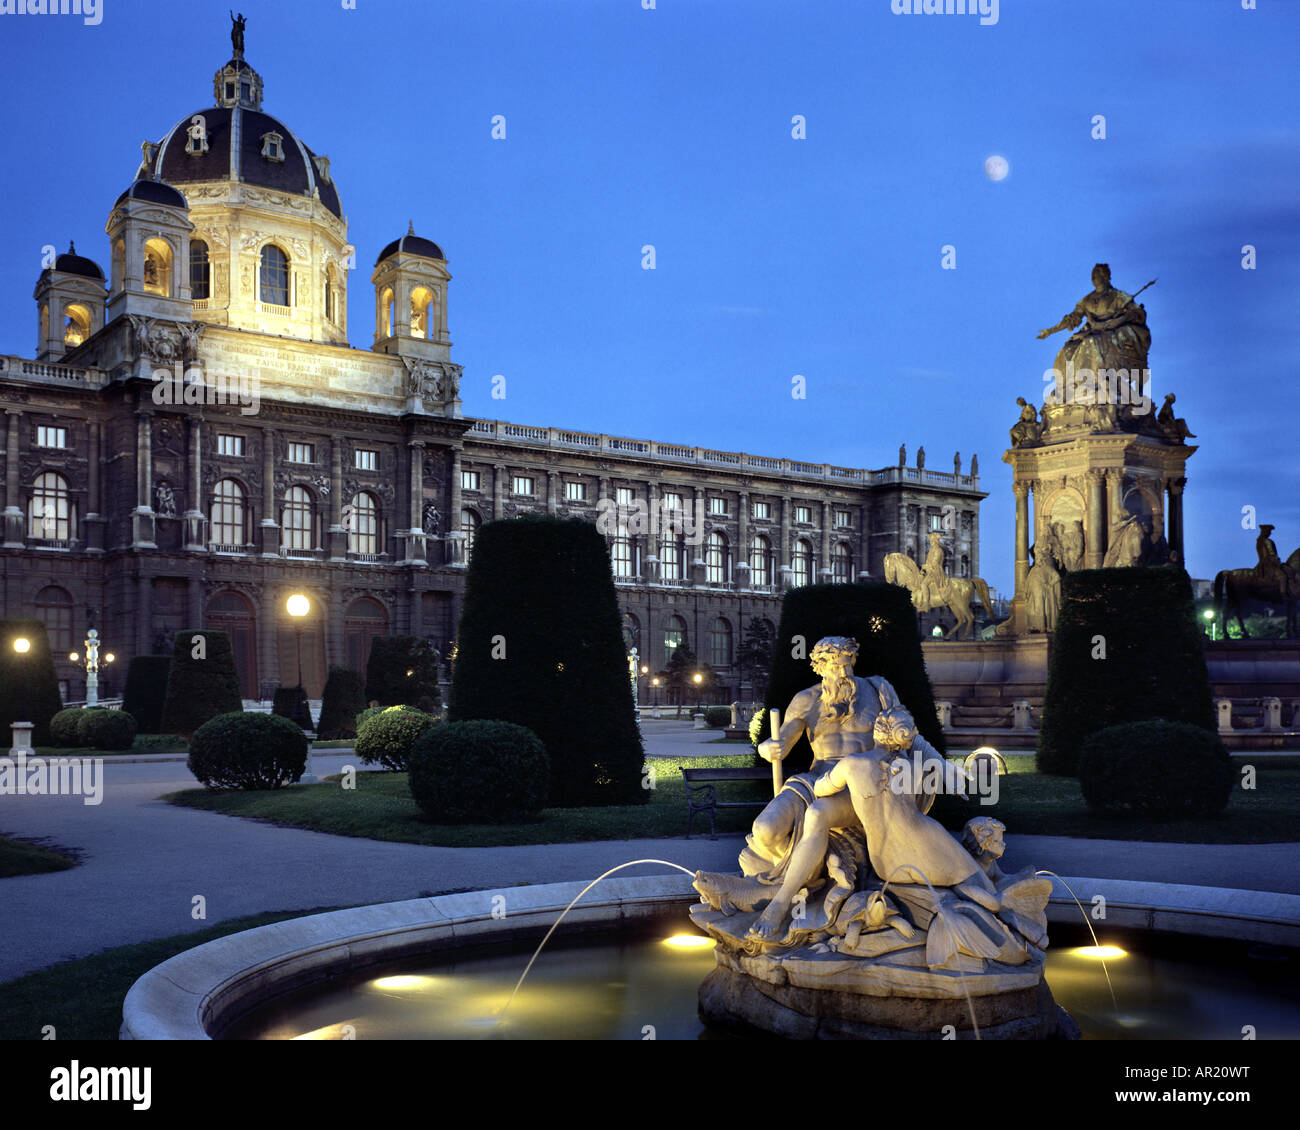 AT - VIENNA: Maria-Theresia-Park bei Nacht Stockfoto